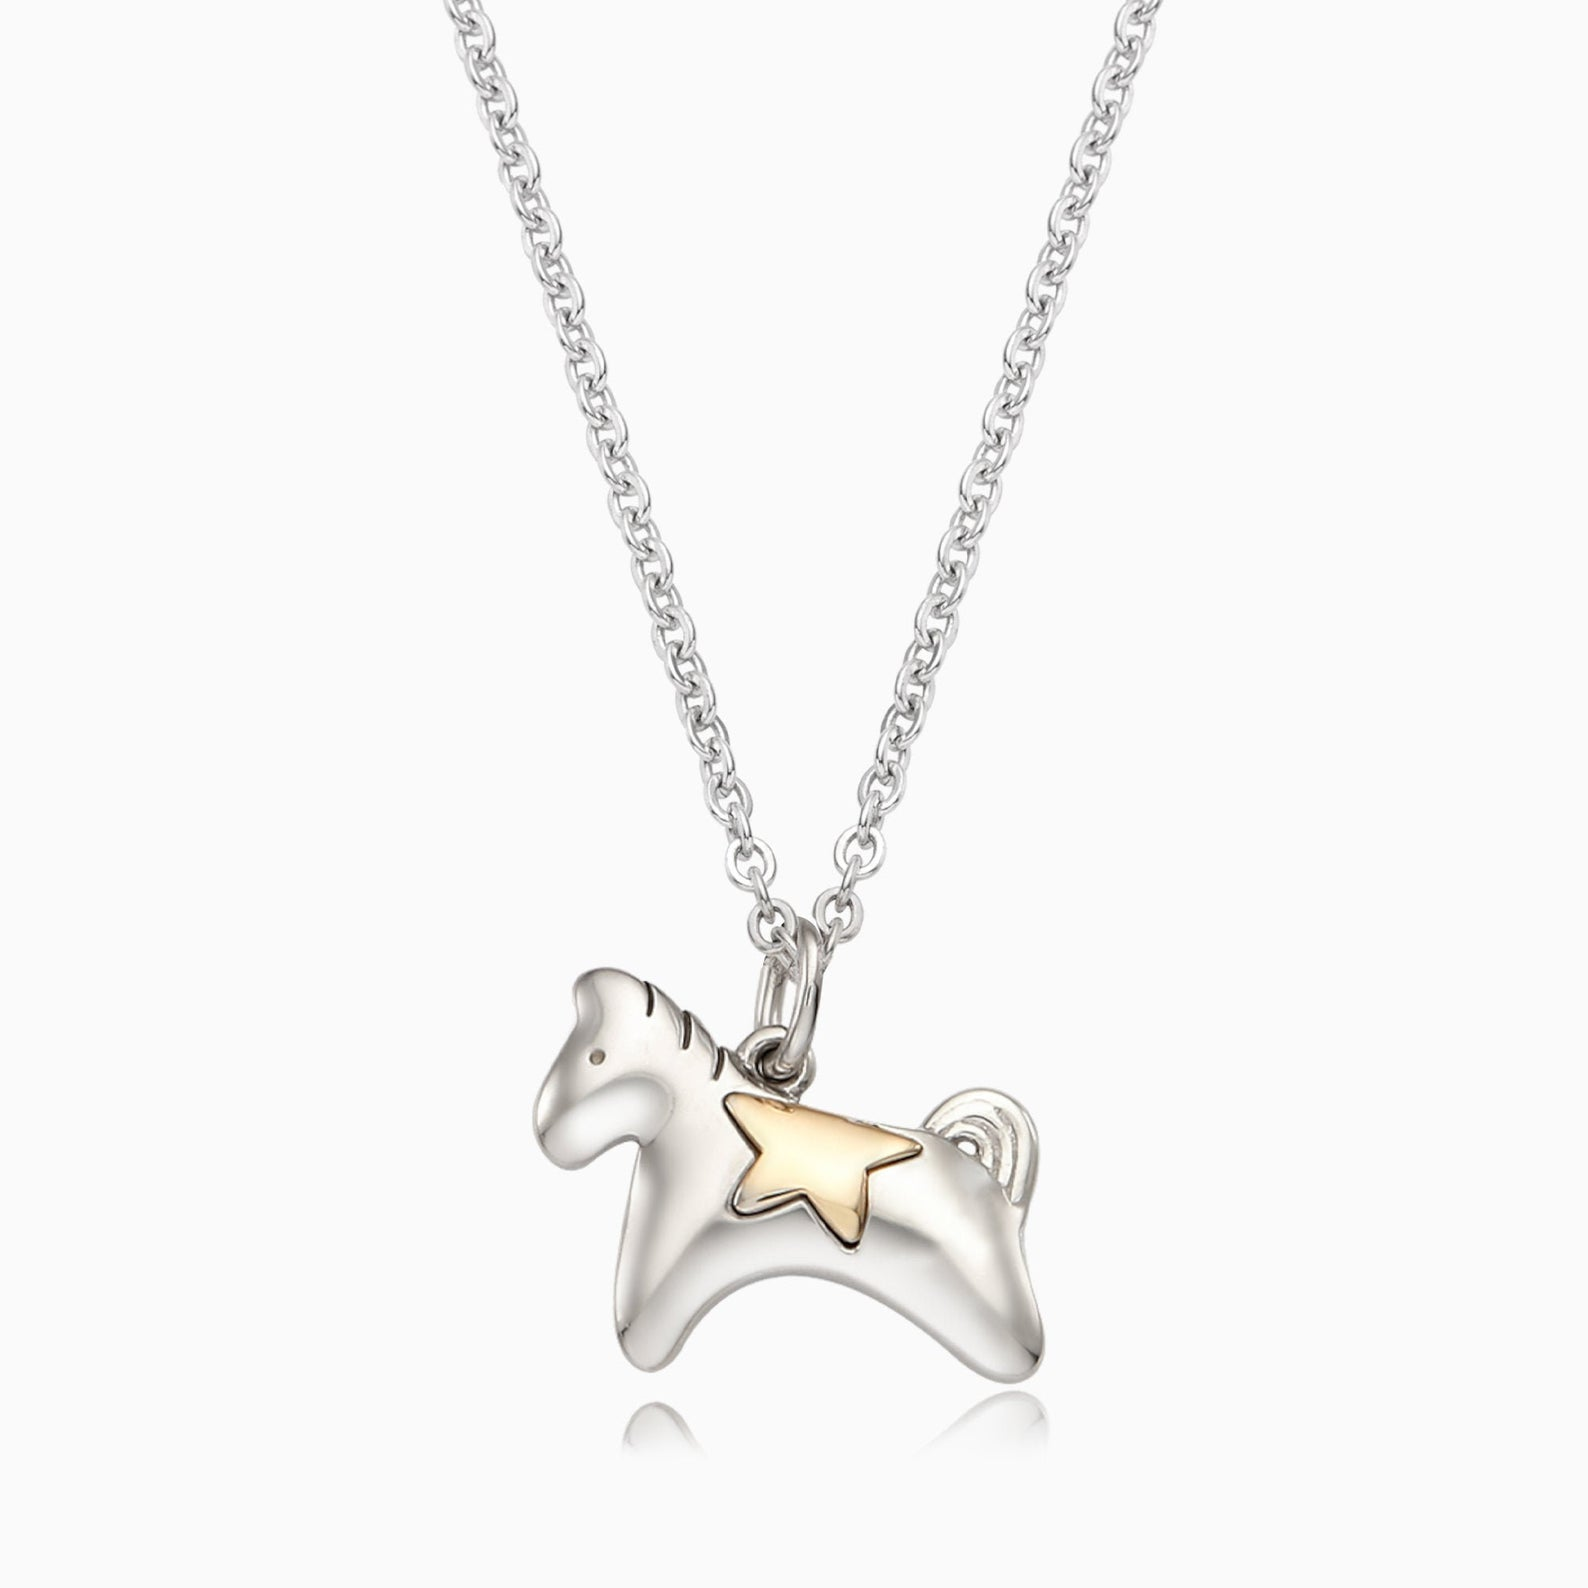 Personalized 5K Sterling Silver Chinese Zodiac Horse Necklace